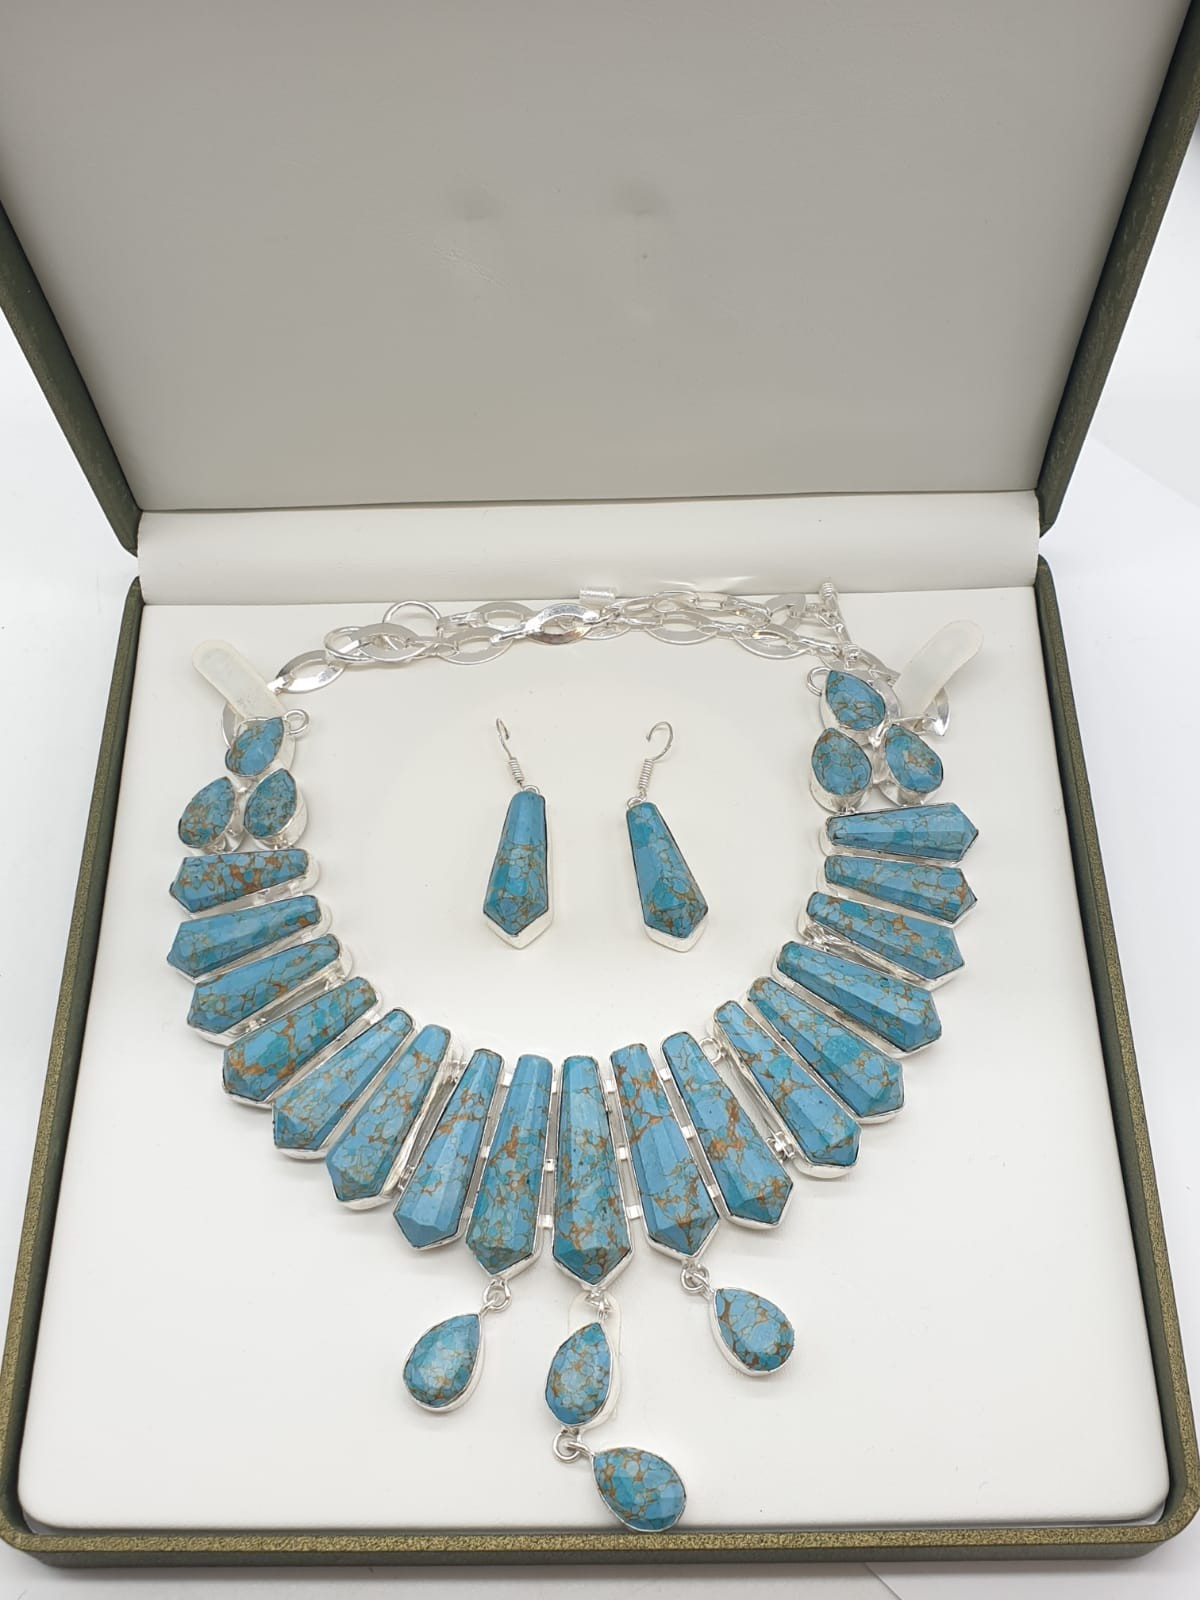 A Pharaonic style necklace and earrings set with light brown-gold veined turquoise obelisks and - Image 19 of 24